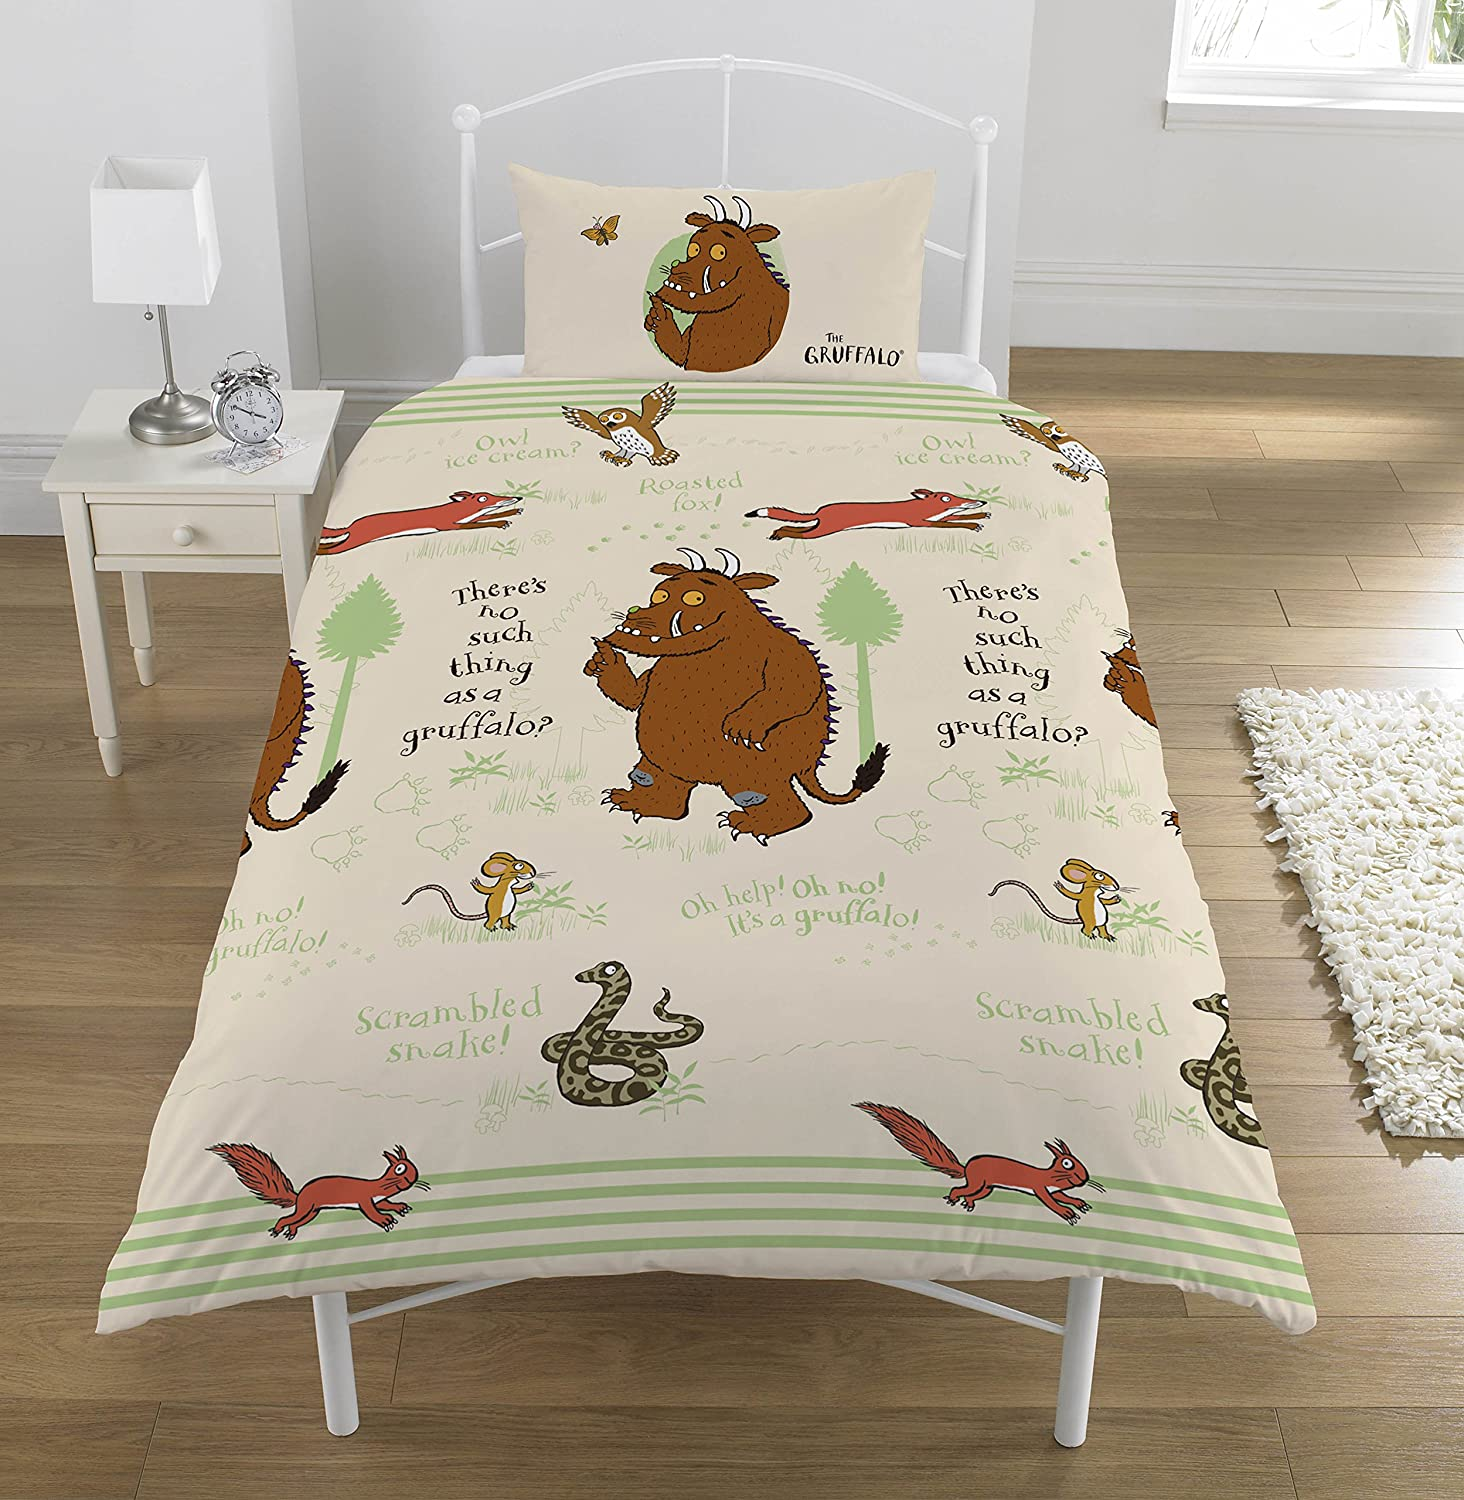 The Gruffalo 'Woodland' Junior Duvet Set, Cotton, Multi Dreamtex Ltd JR3-GRU-WLS-12